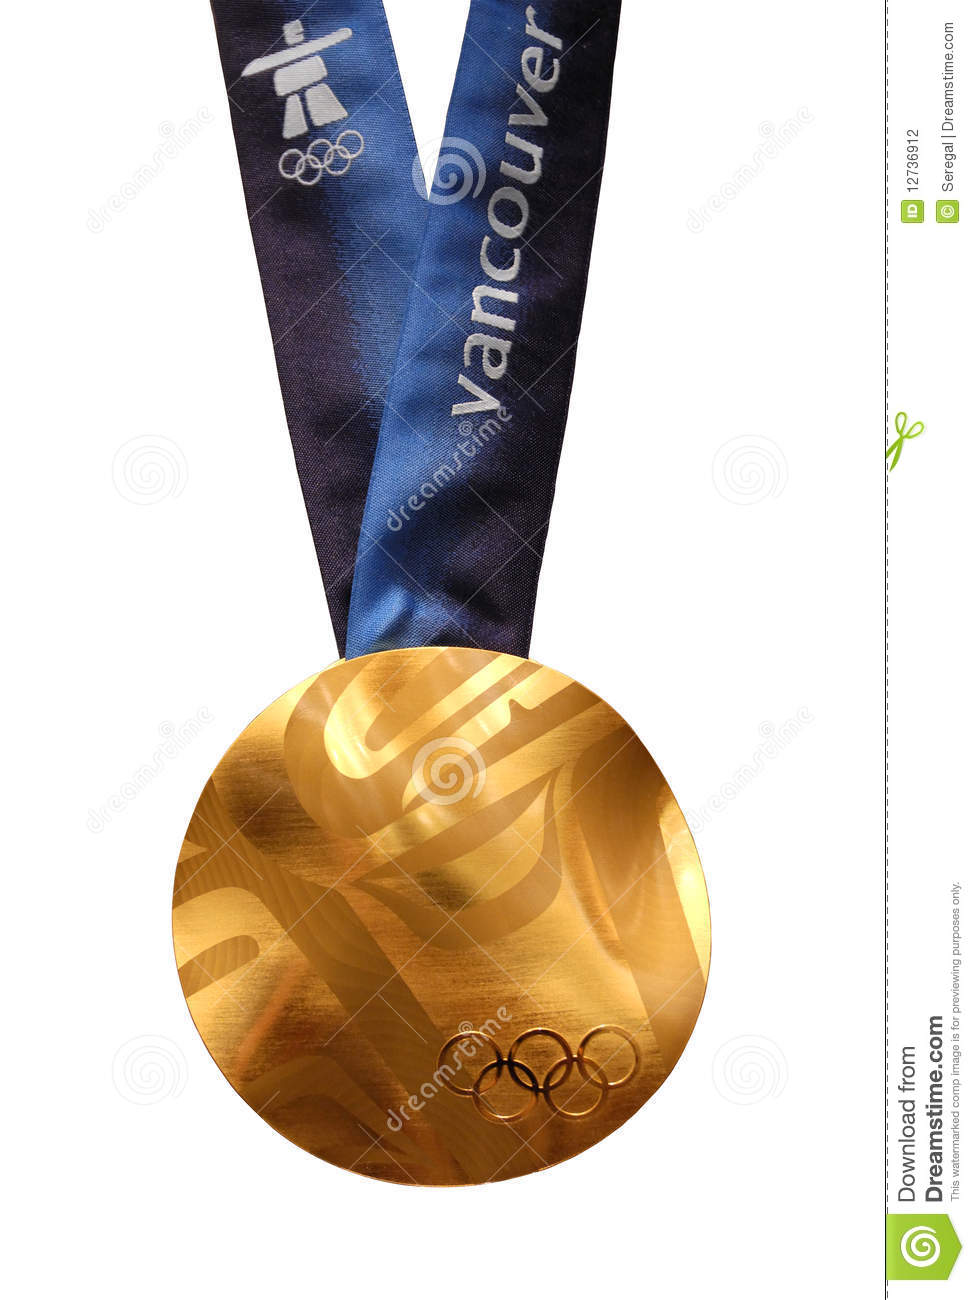 vancouver 2010 olympics gouden medaille redactionele